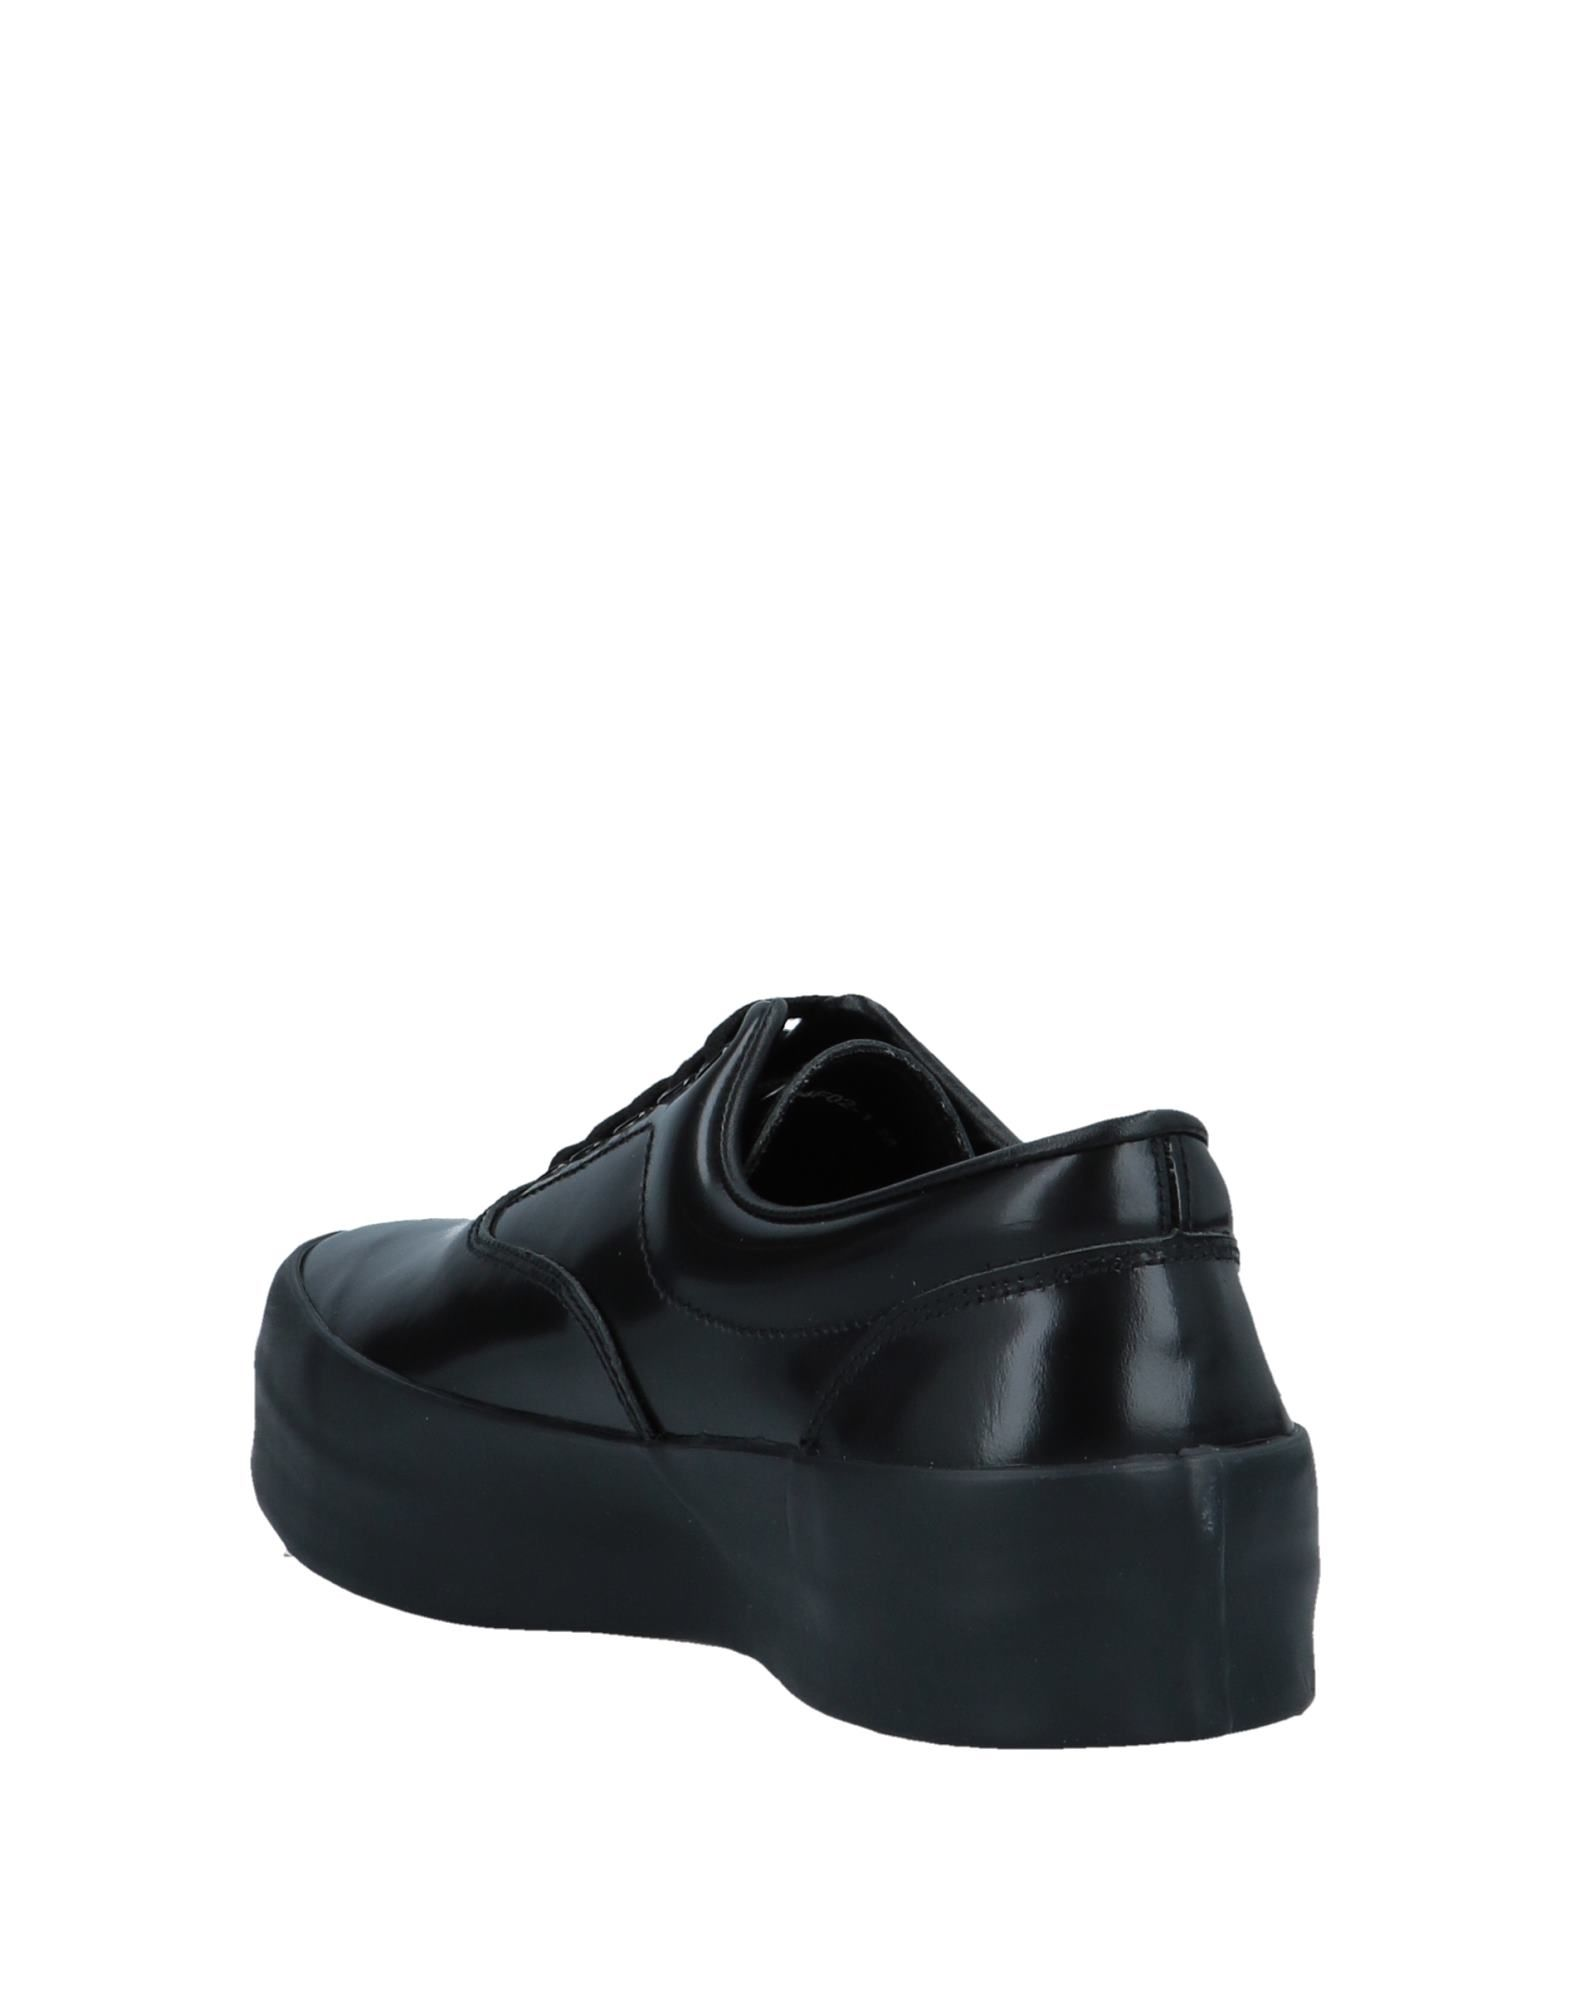 Undercover Sneakers - Men Undercover Sneakers online on on on  Canada - 11578538RN 9638b5